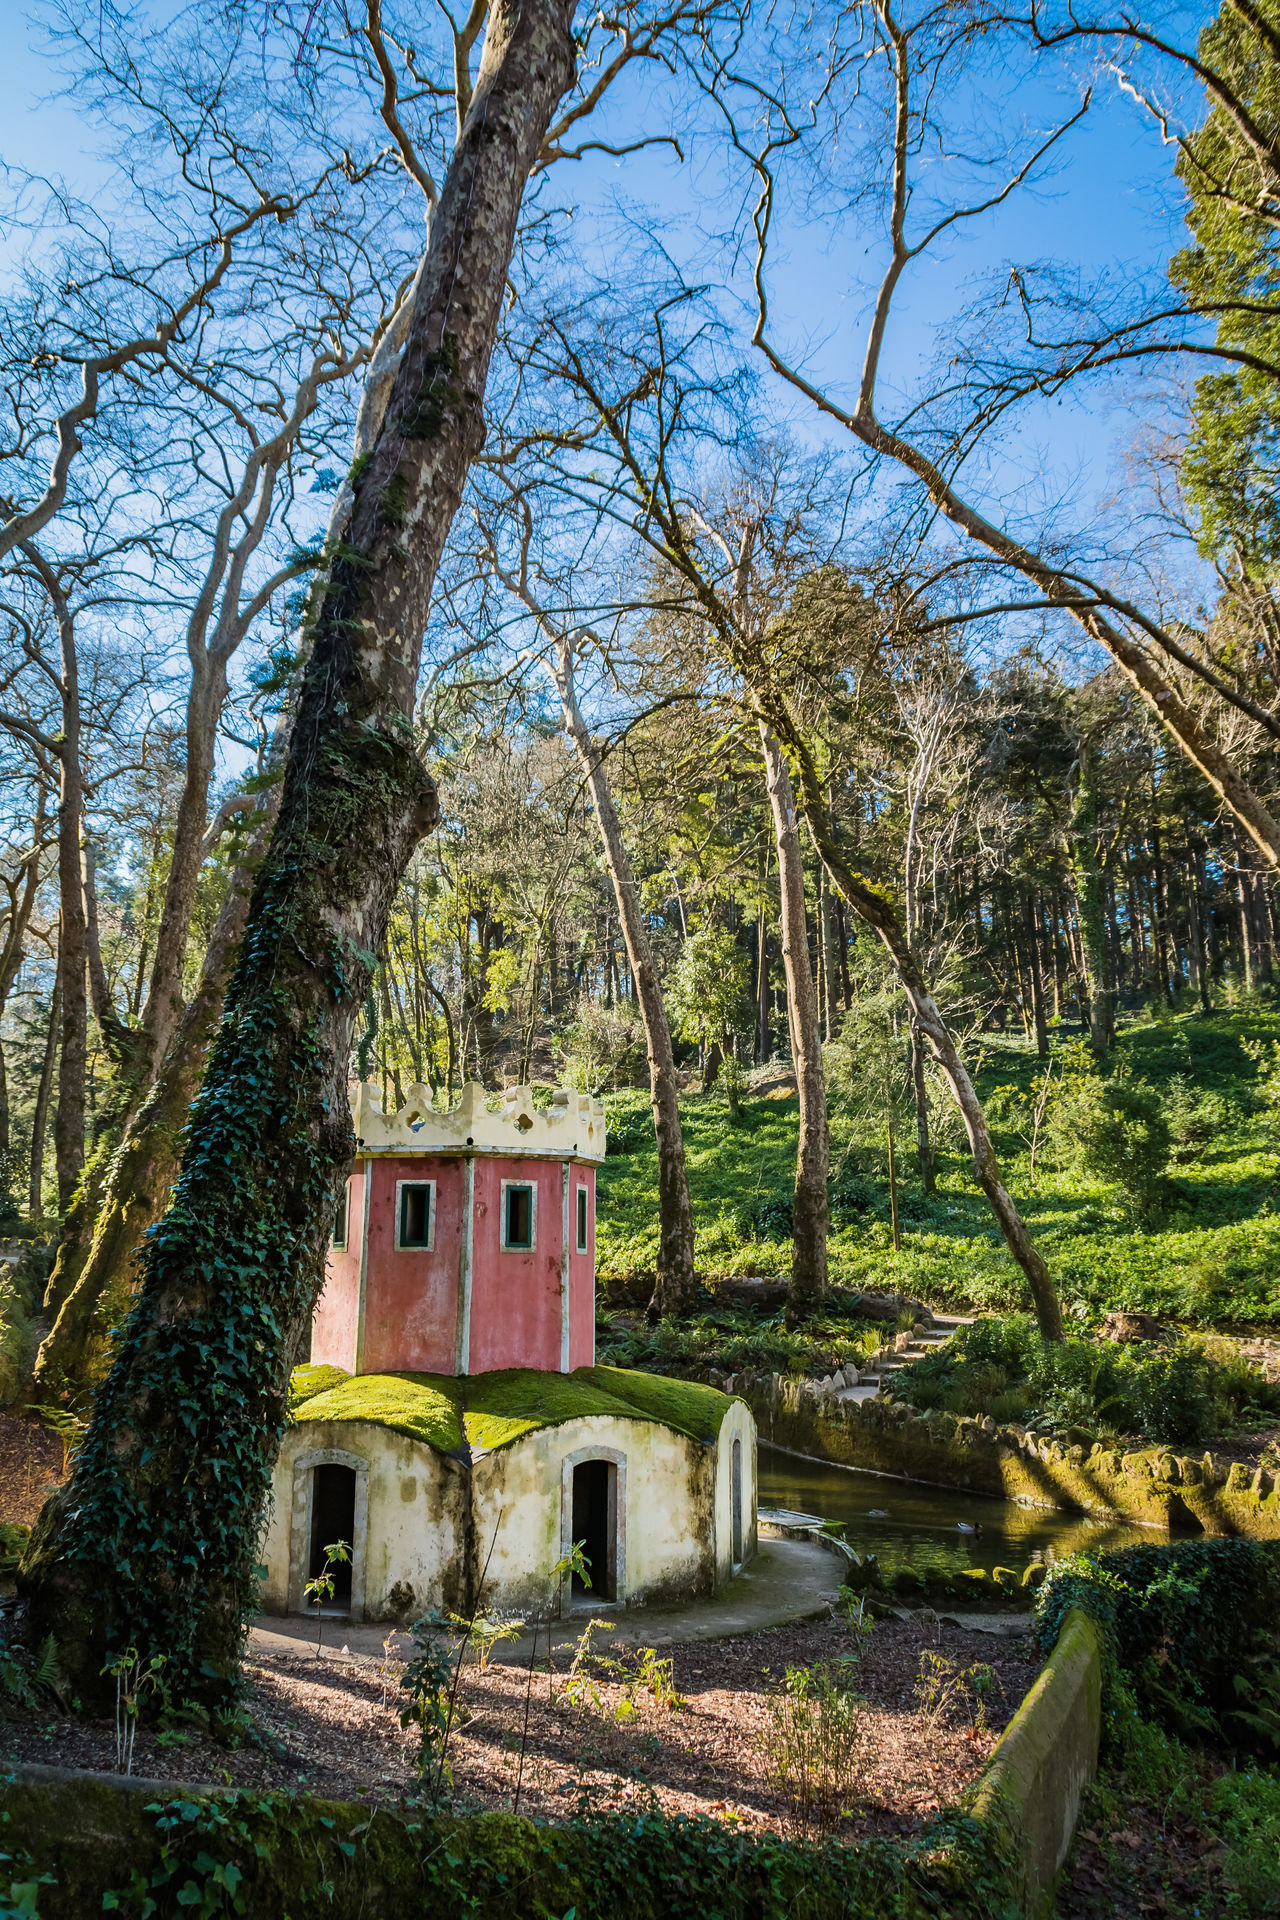 Ancient Architecture Architecture Beauty In Nature Building Exterior Built Structure Colors Day Gardens Growth Hiking Historical Building Majestic Monuments Nature No People Outdoors Palace Picturesque Ruins Sintra (Portugal) Sky Town Trails Tree